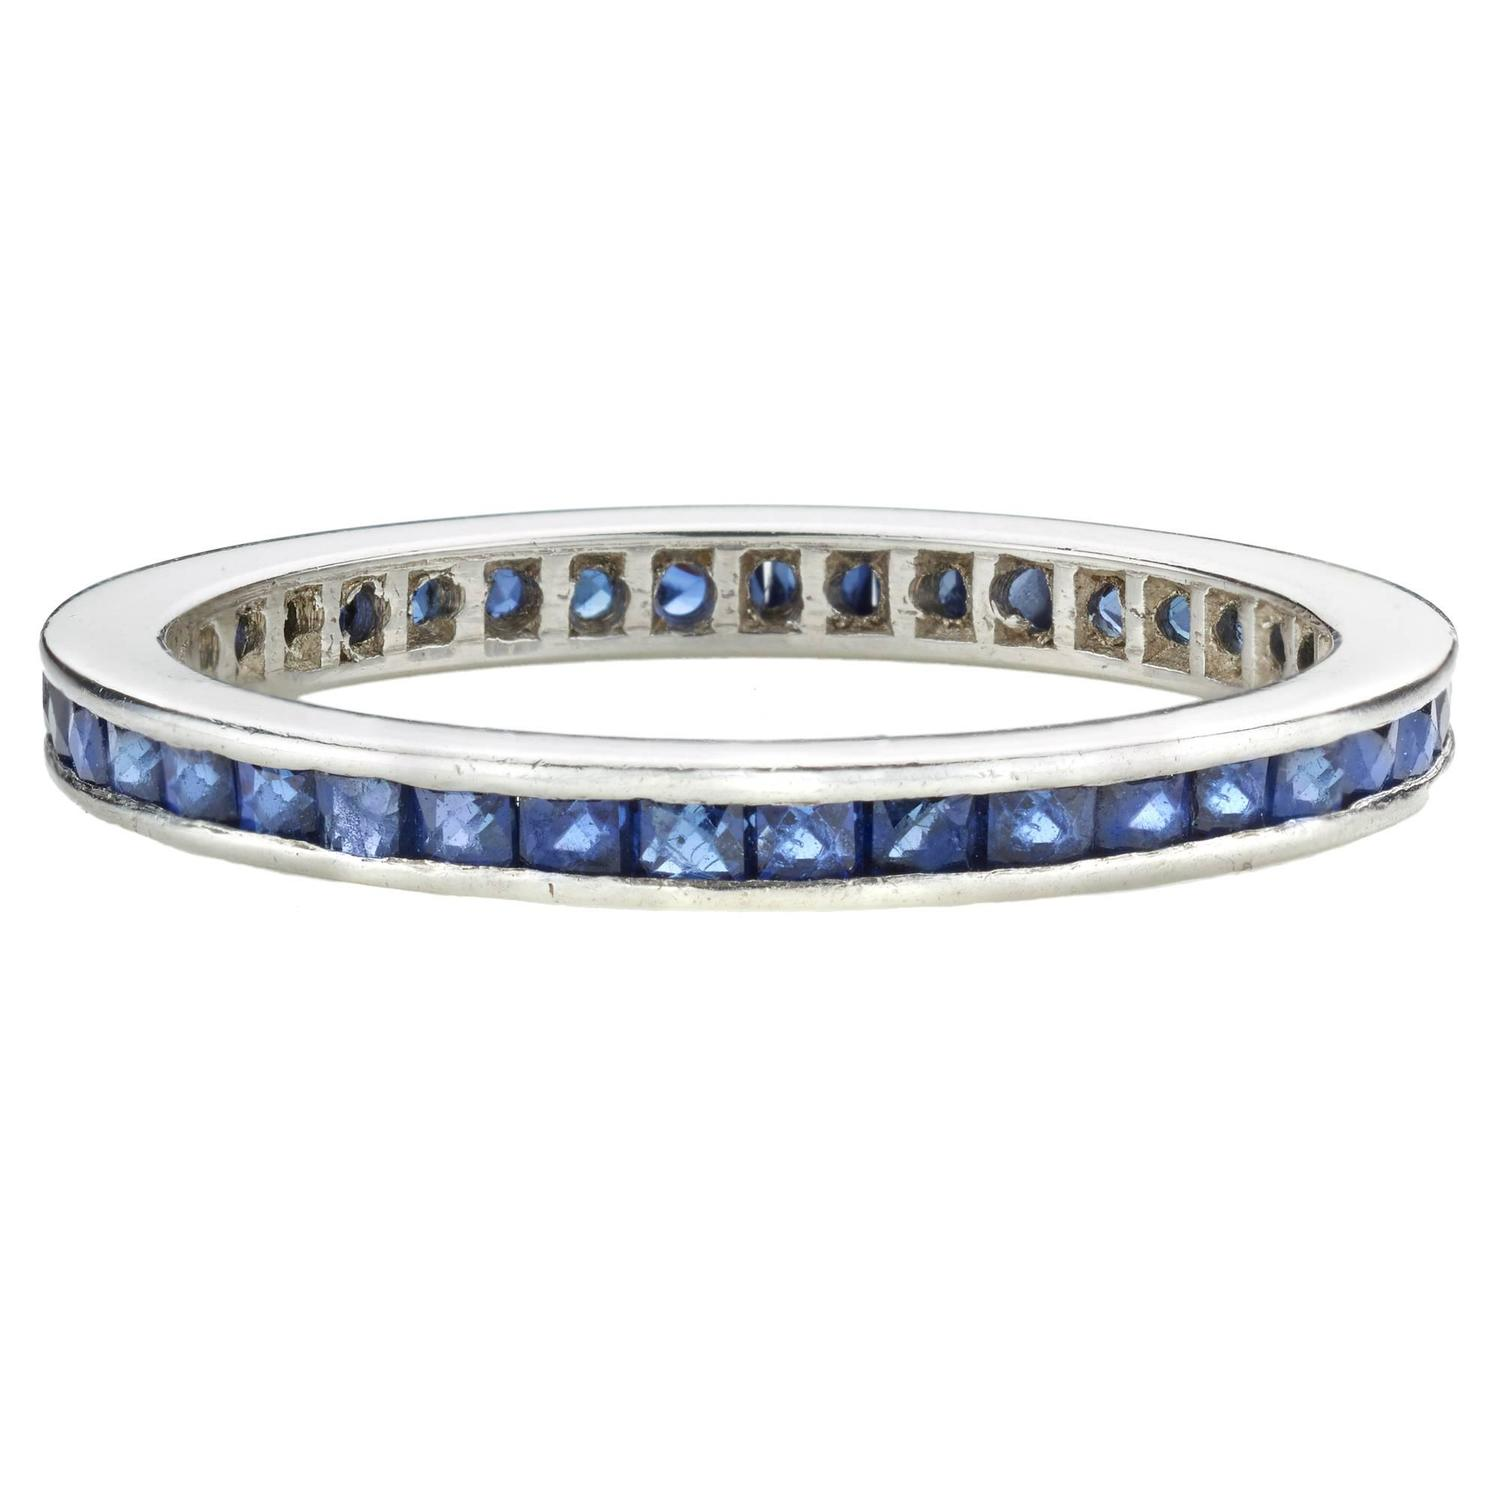 wg band bands art sapphire nl gemstone set round in wedding gold jewelry pave deco blue white anniversary with diamond